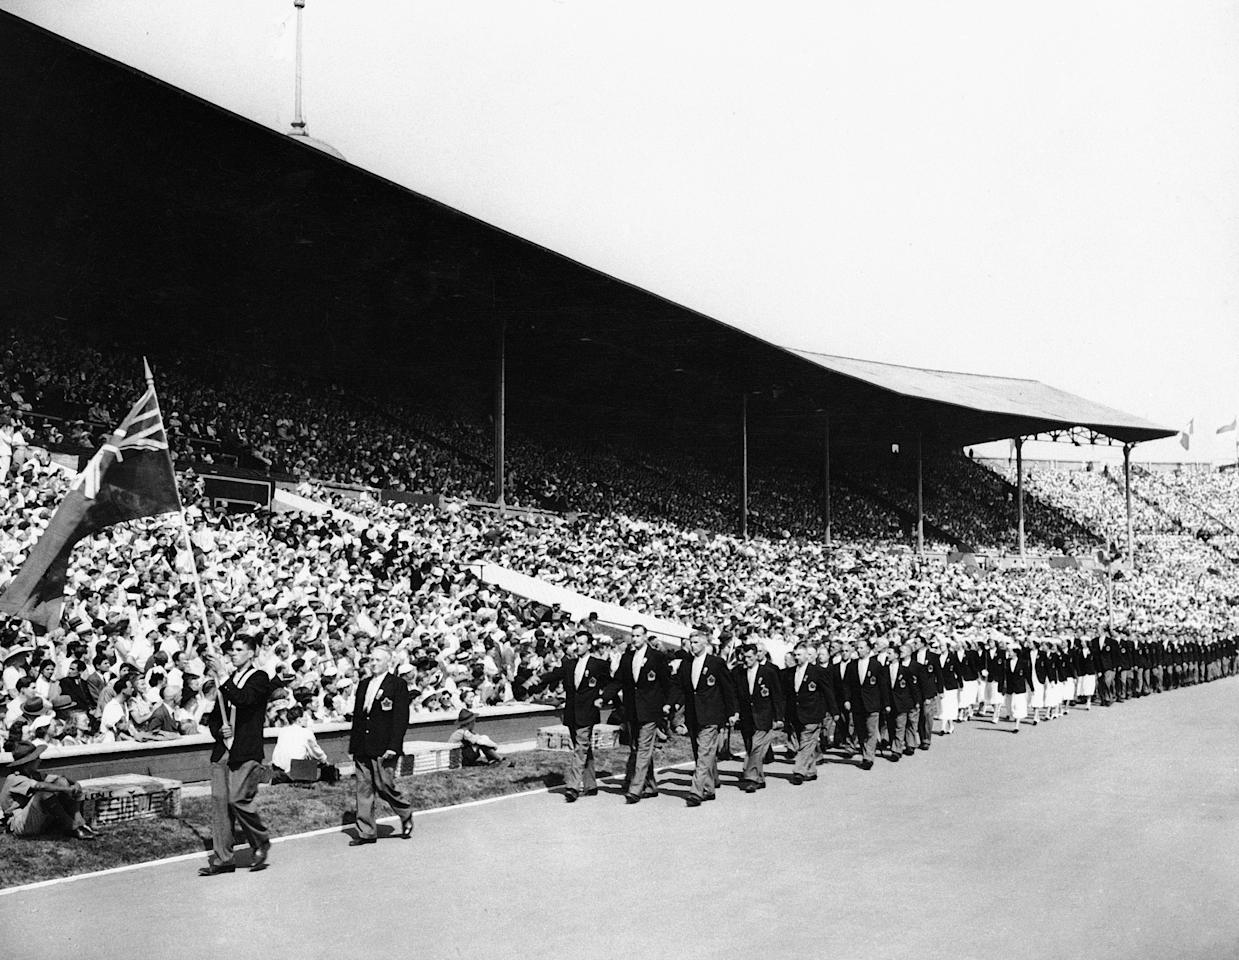 Members of the Canadian Olympic team march past the stand at Wembley Stadium in London, July 29, 1948, during opening ceremonies for the Summer Olympics. (AP Photo)